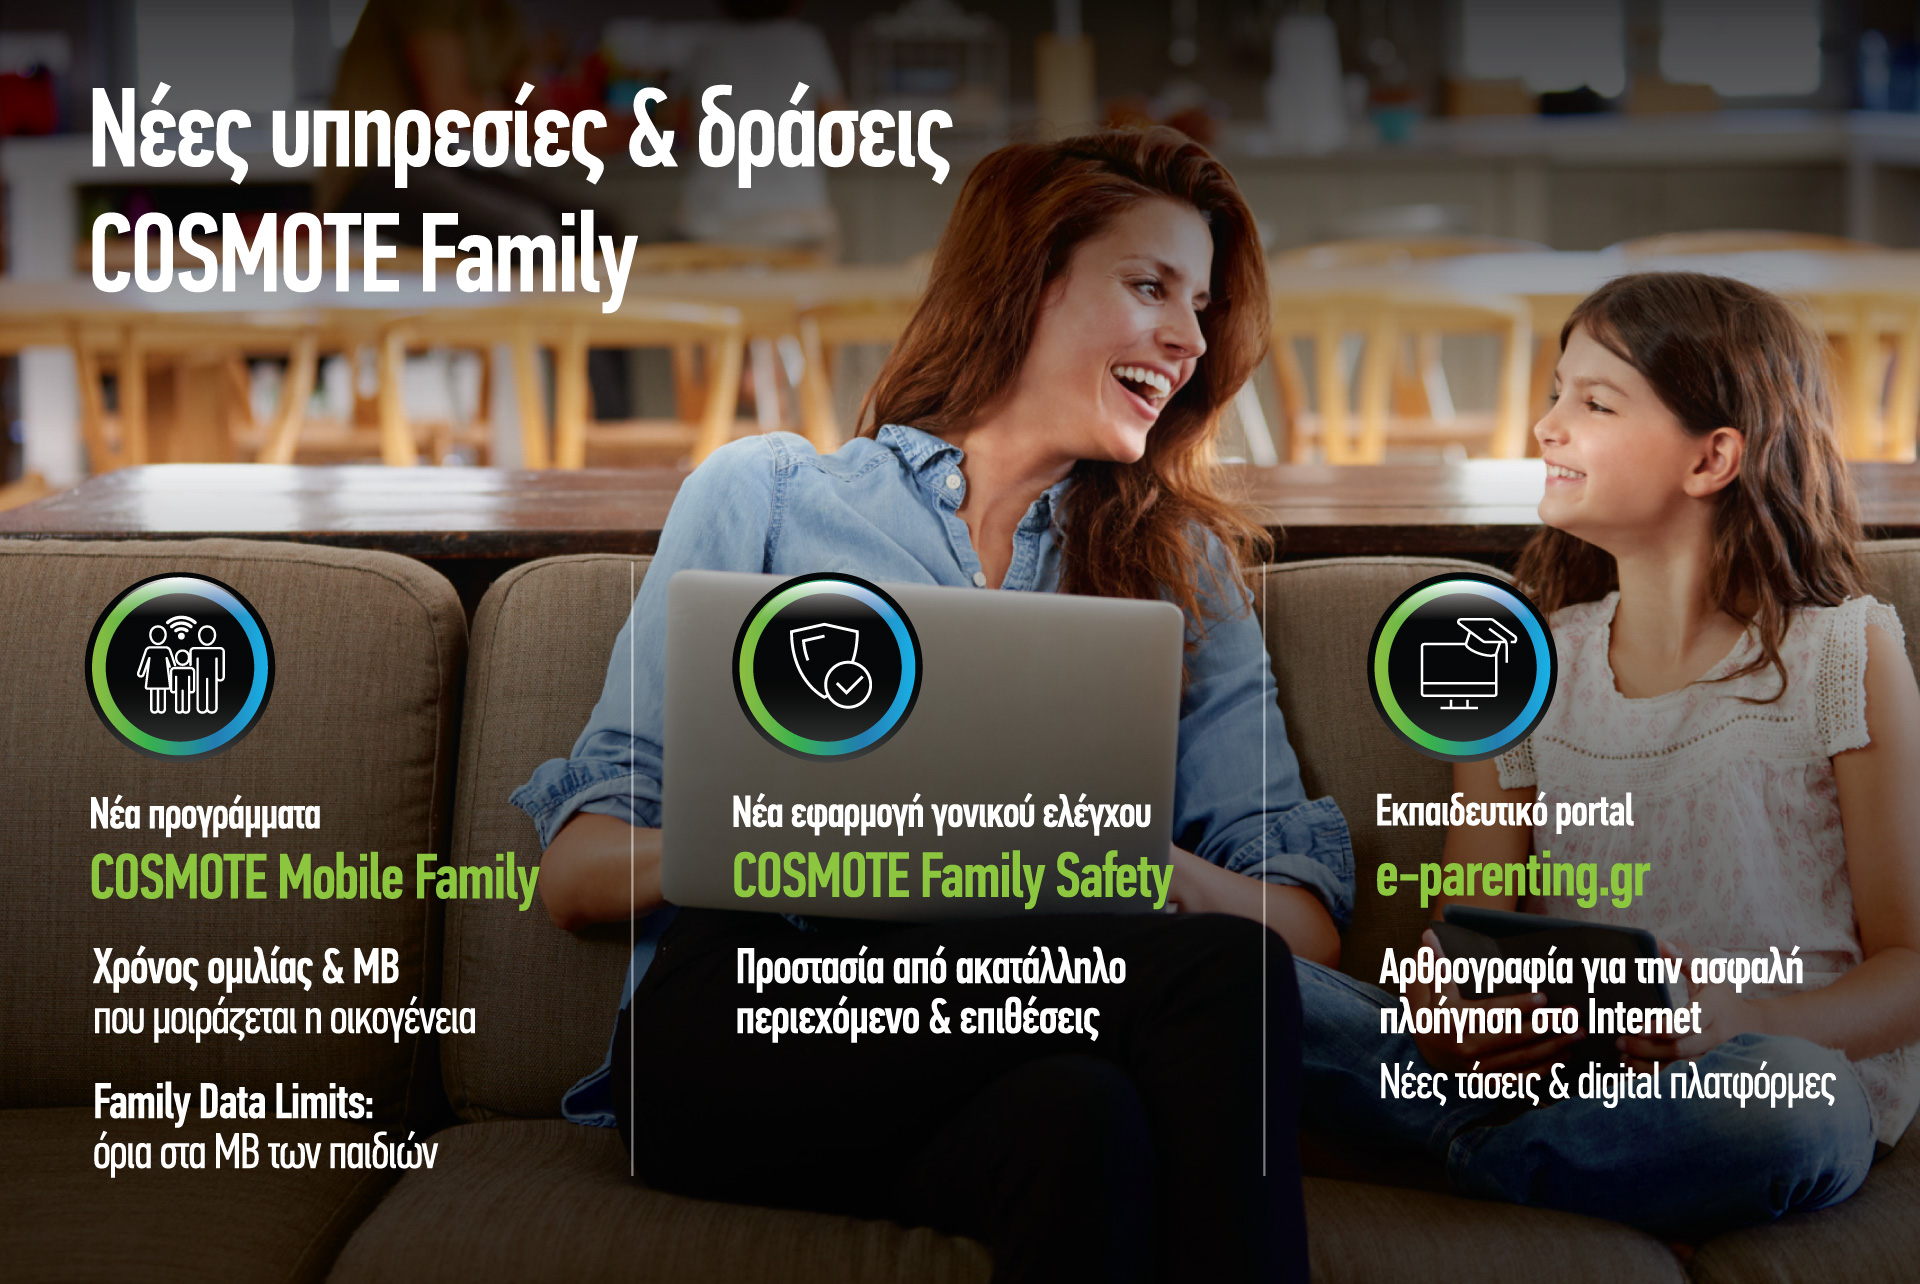 COSMOTE Family actions